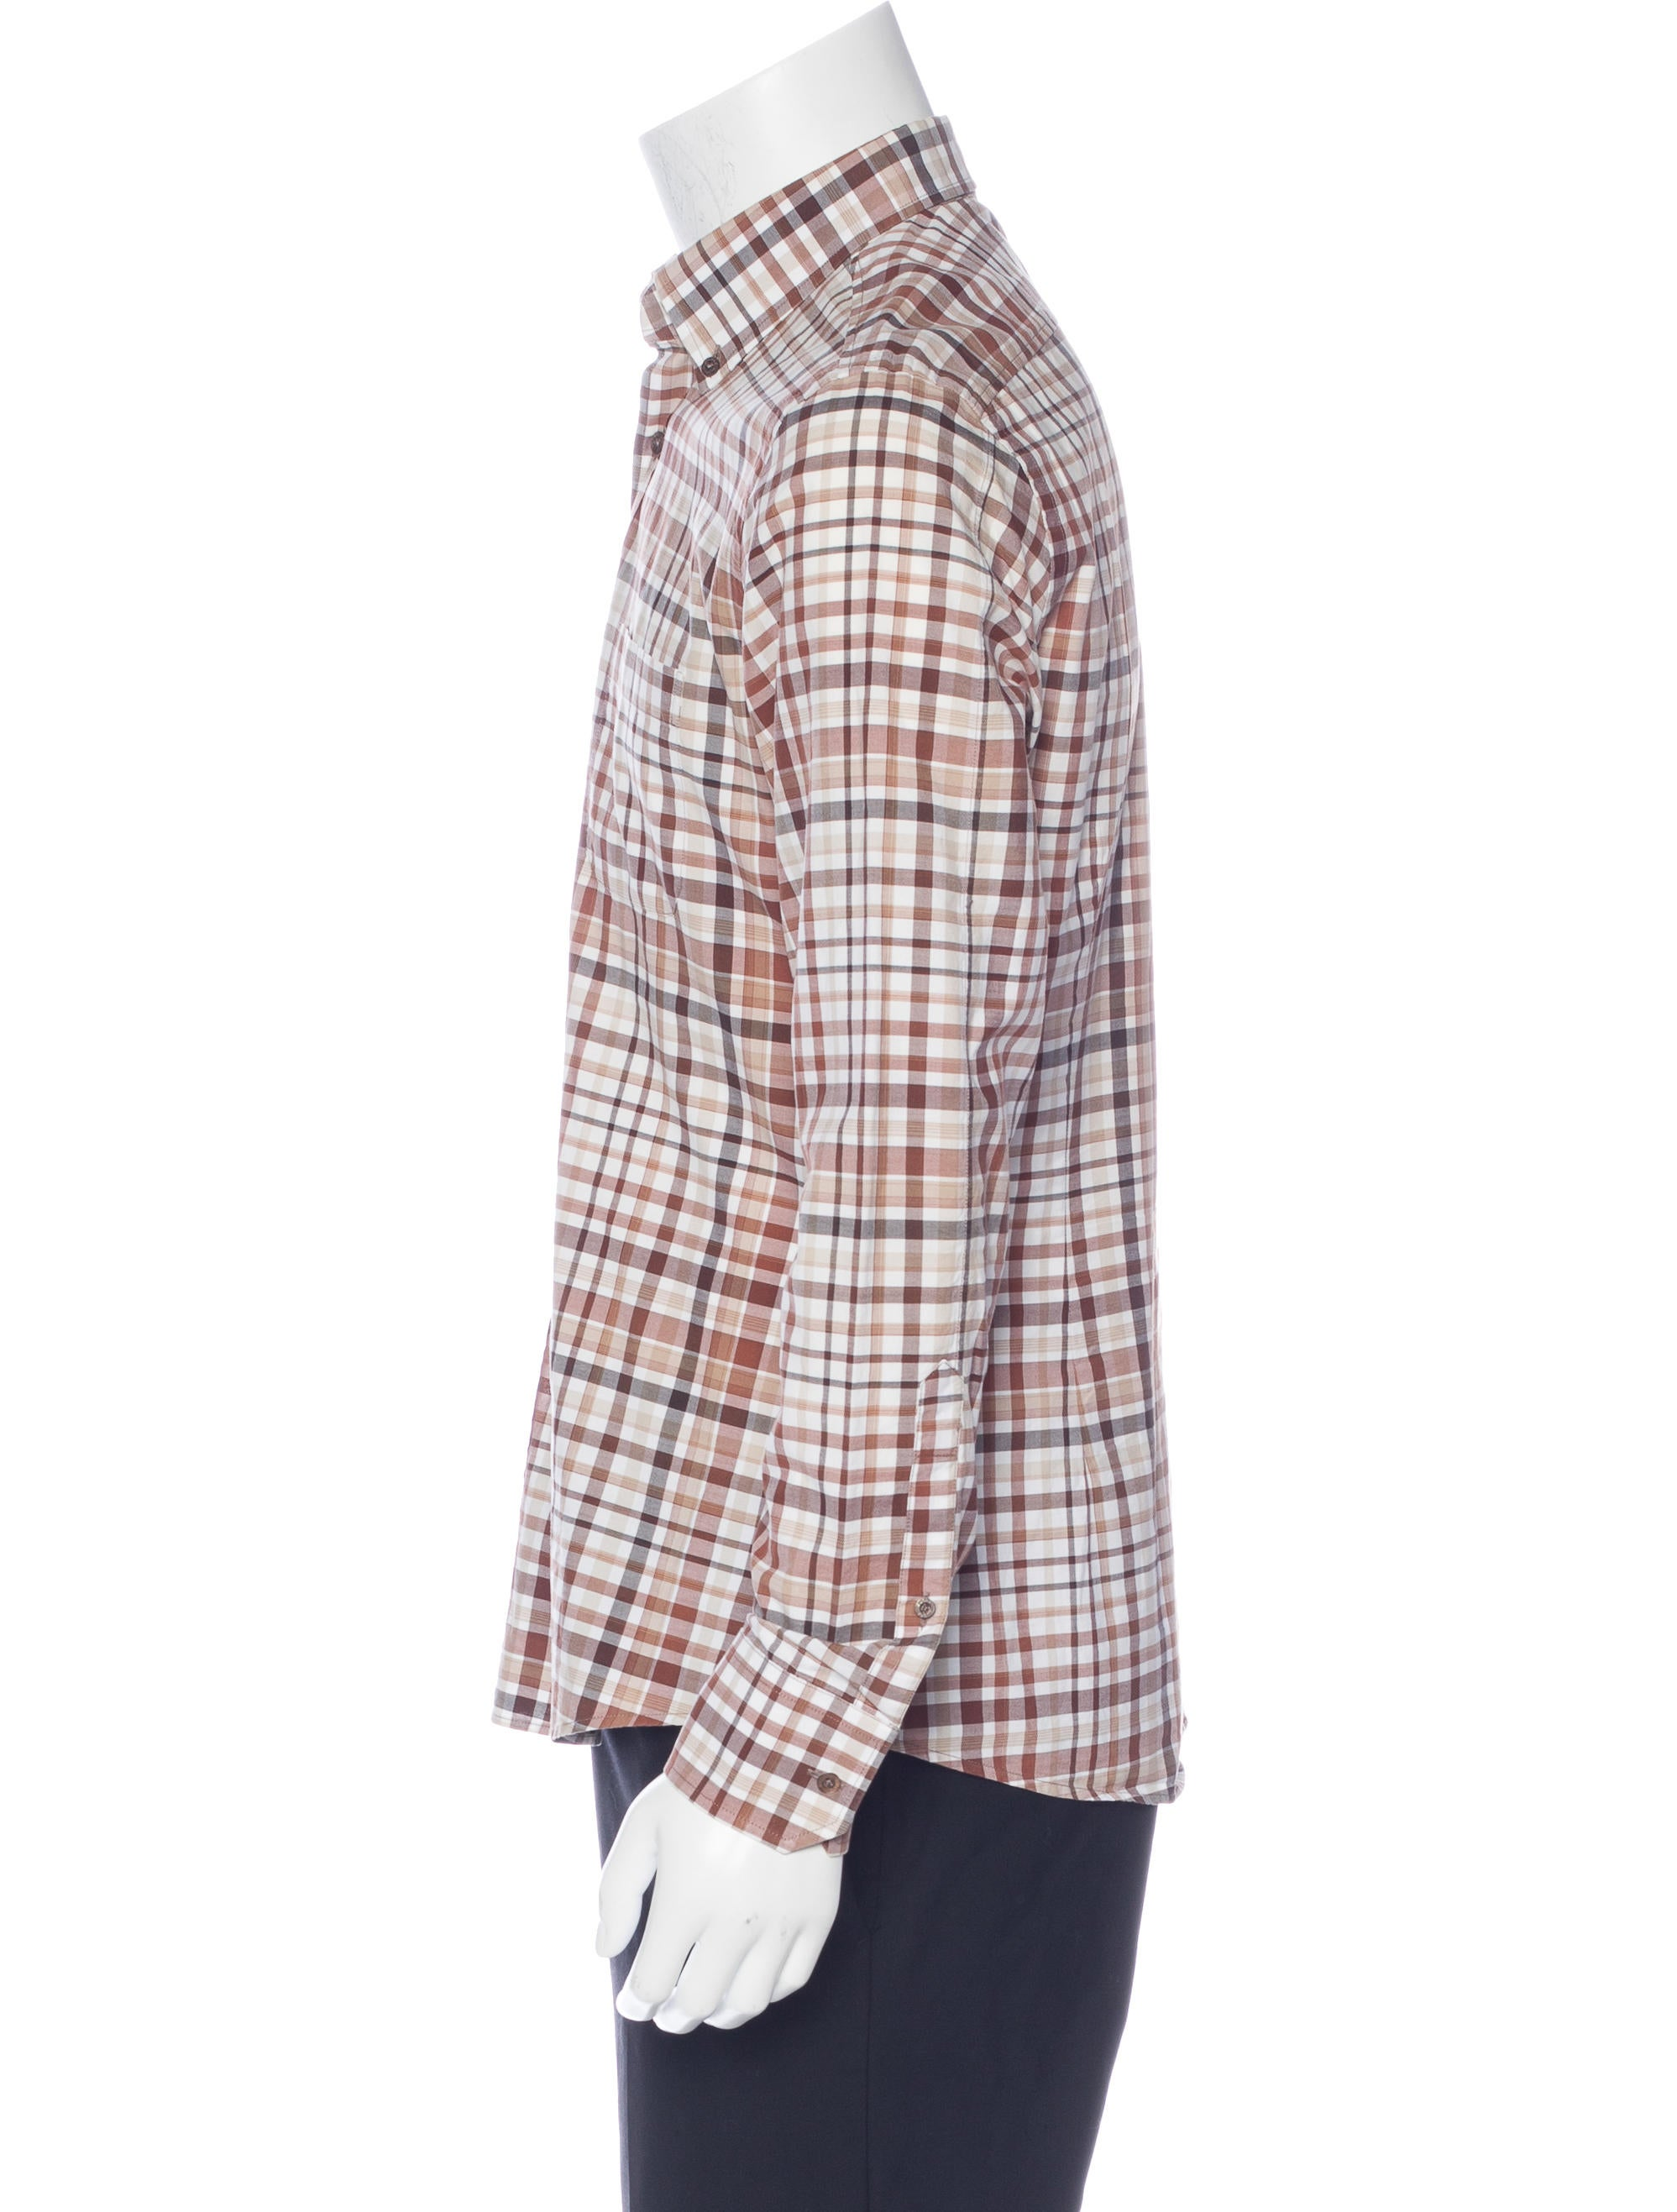 Gucci Plaid Button-Up Shirt - Clothing - GUC153547 | The ...